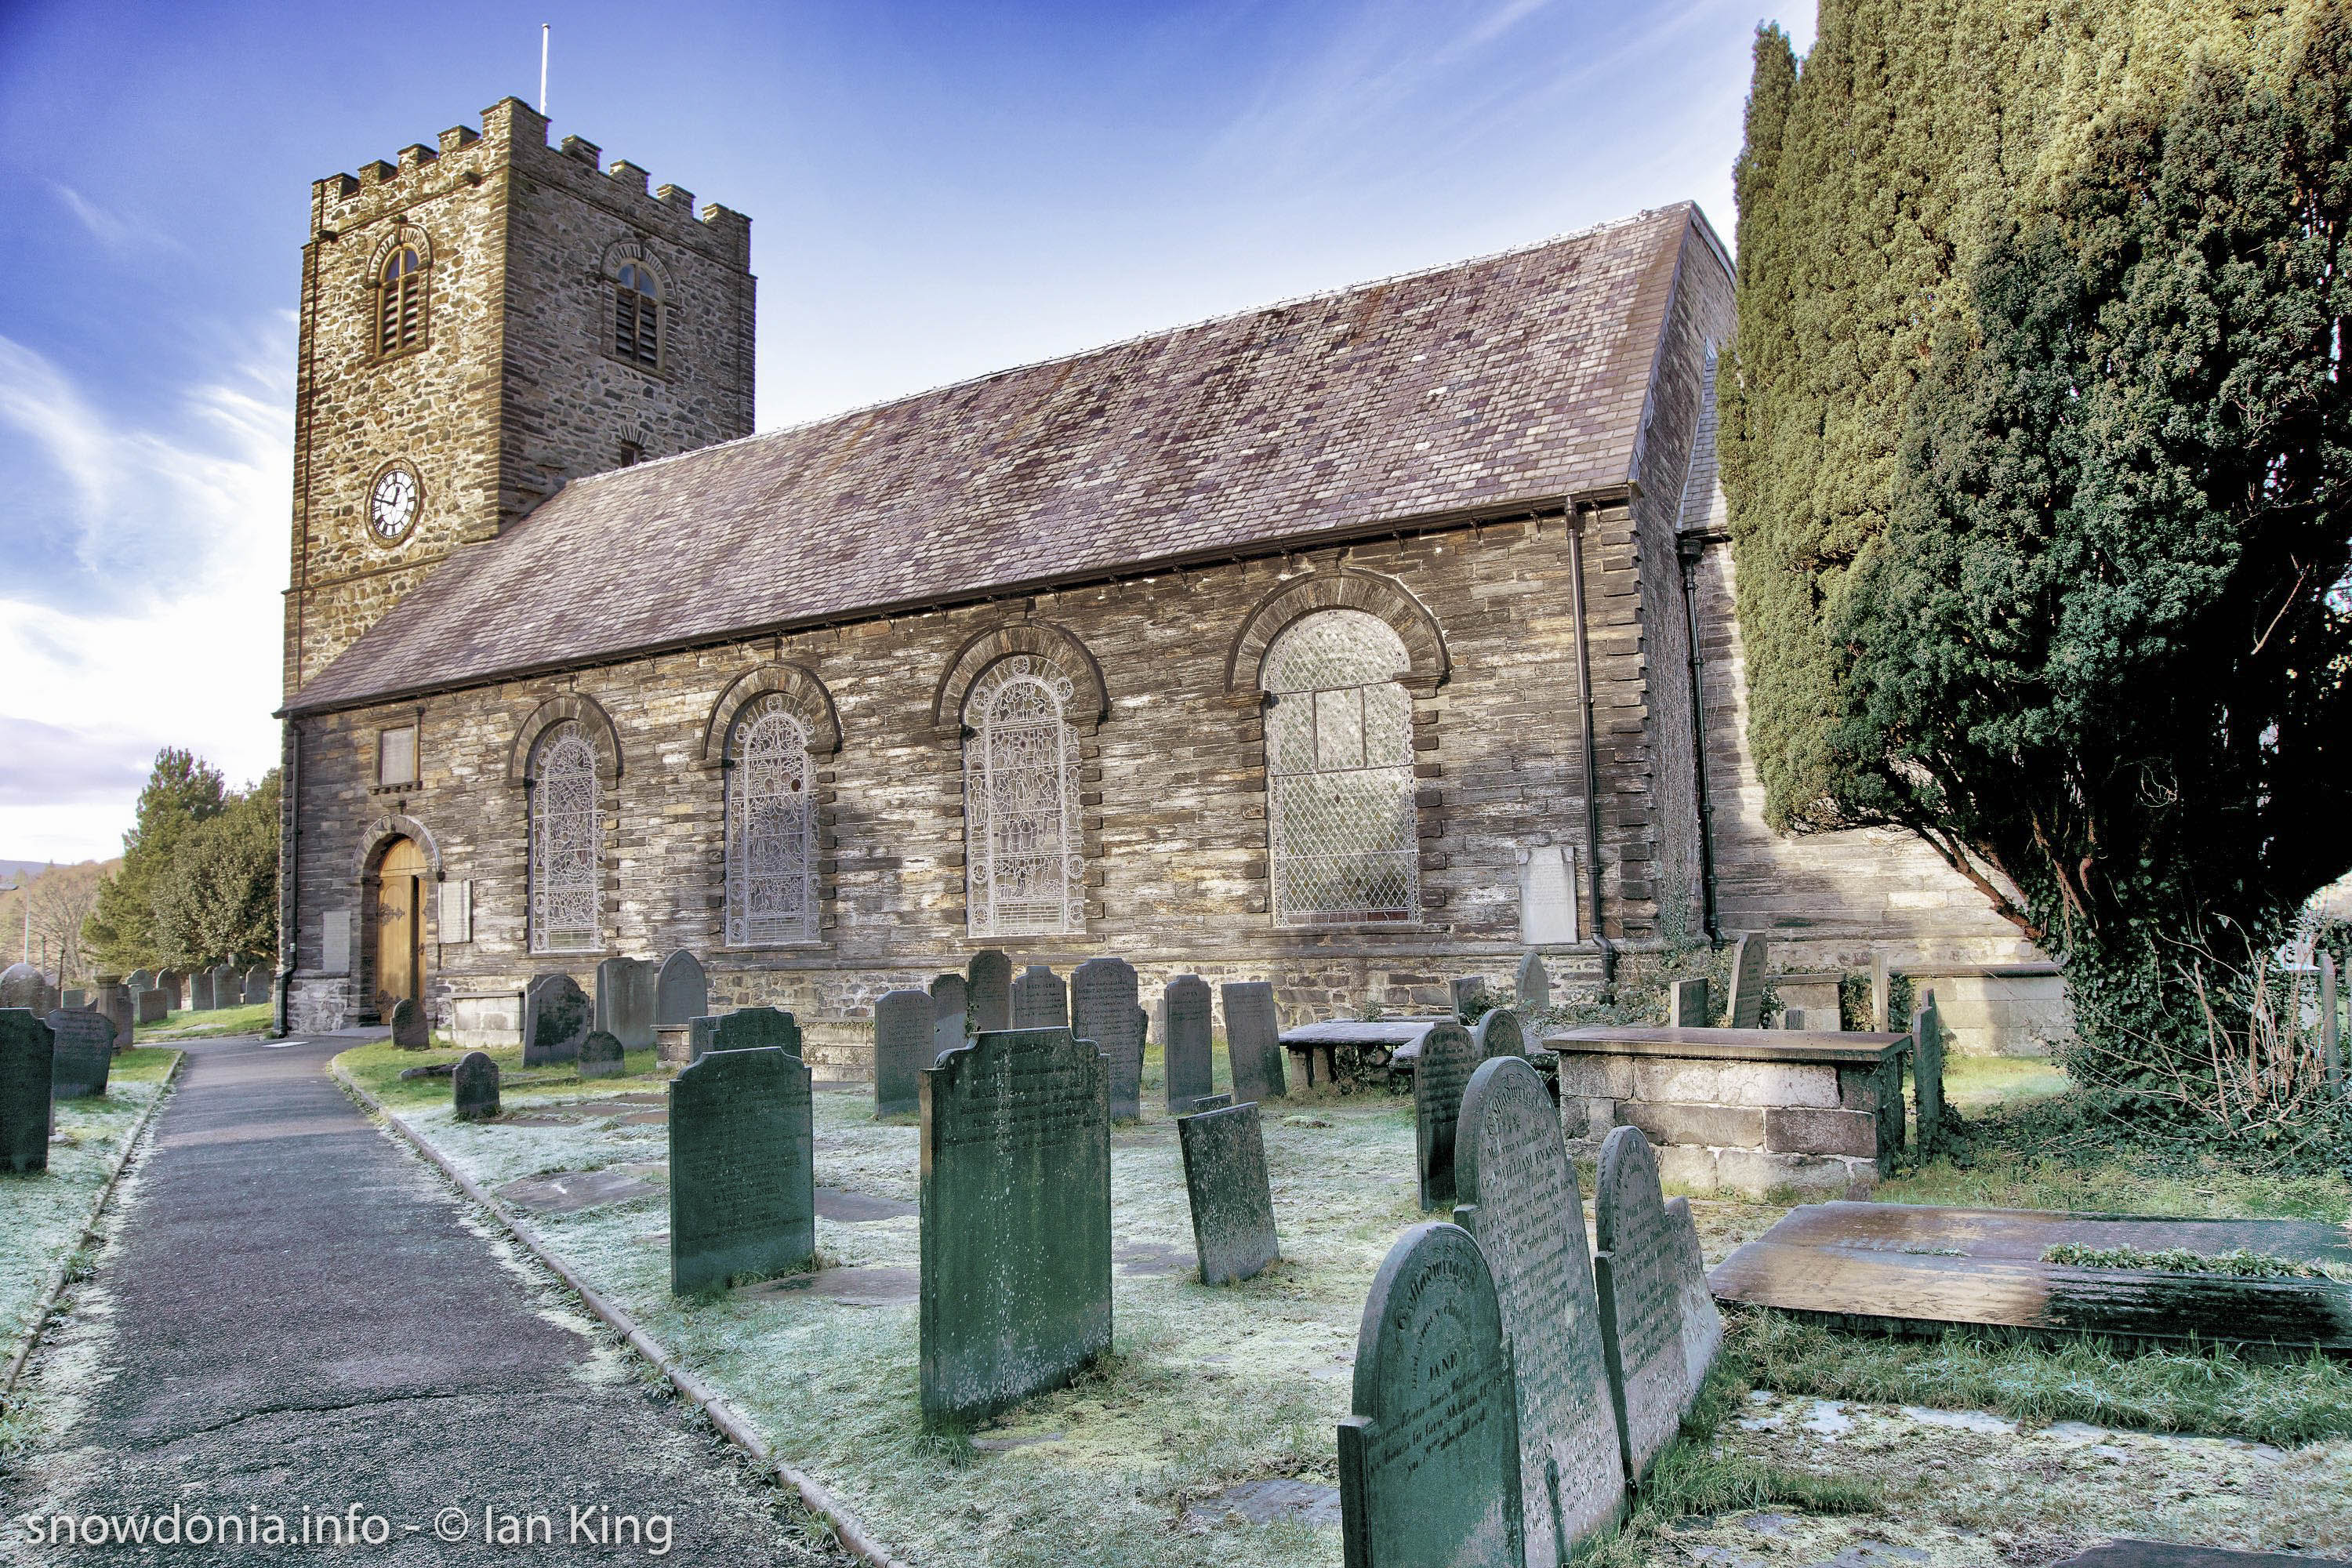 St Mary S Church Snowdonia In Wales Make Your Own Beautiful  HD Wallpapers, Images Over 1000+ [ralydesign.ml]